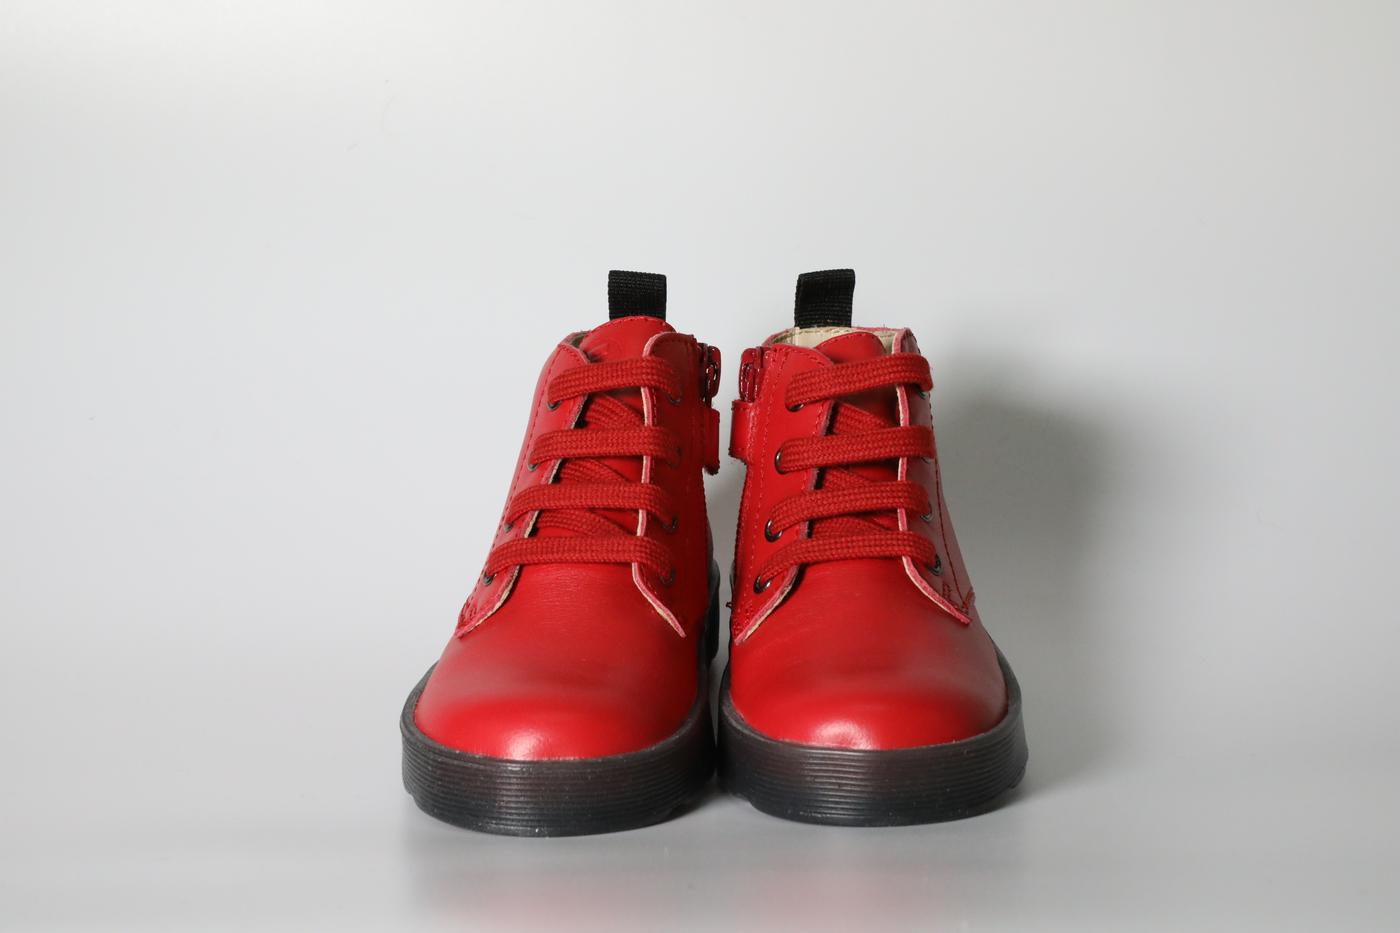 Red lace-up boots